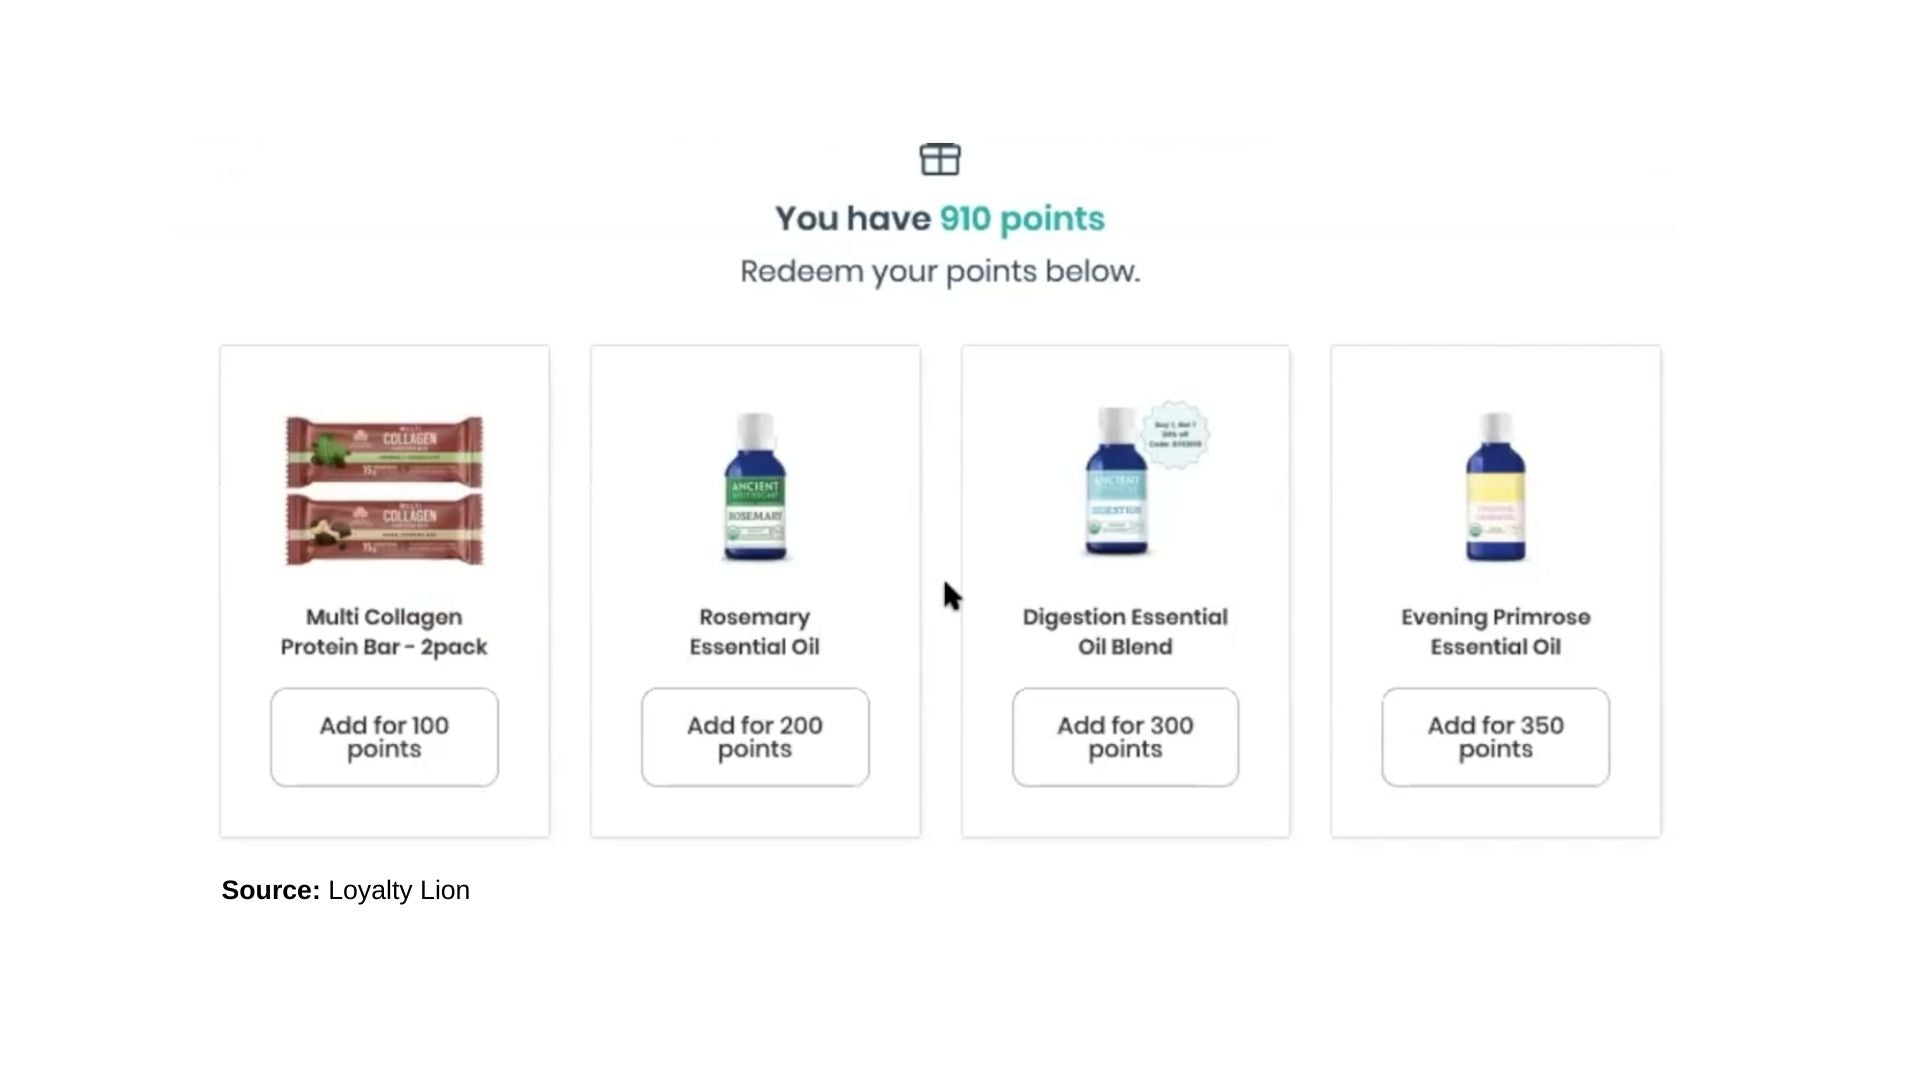 Ancient Nutrition with a 300% increase in reward redemption, and the Instant Points created a 36% increase in average order value (AOV) using Loyalty Lion